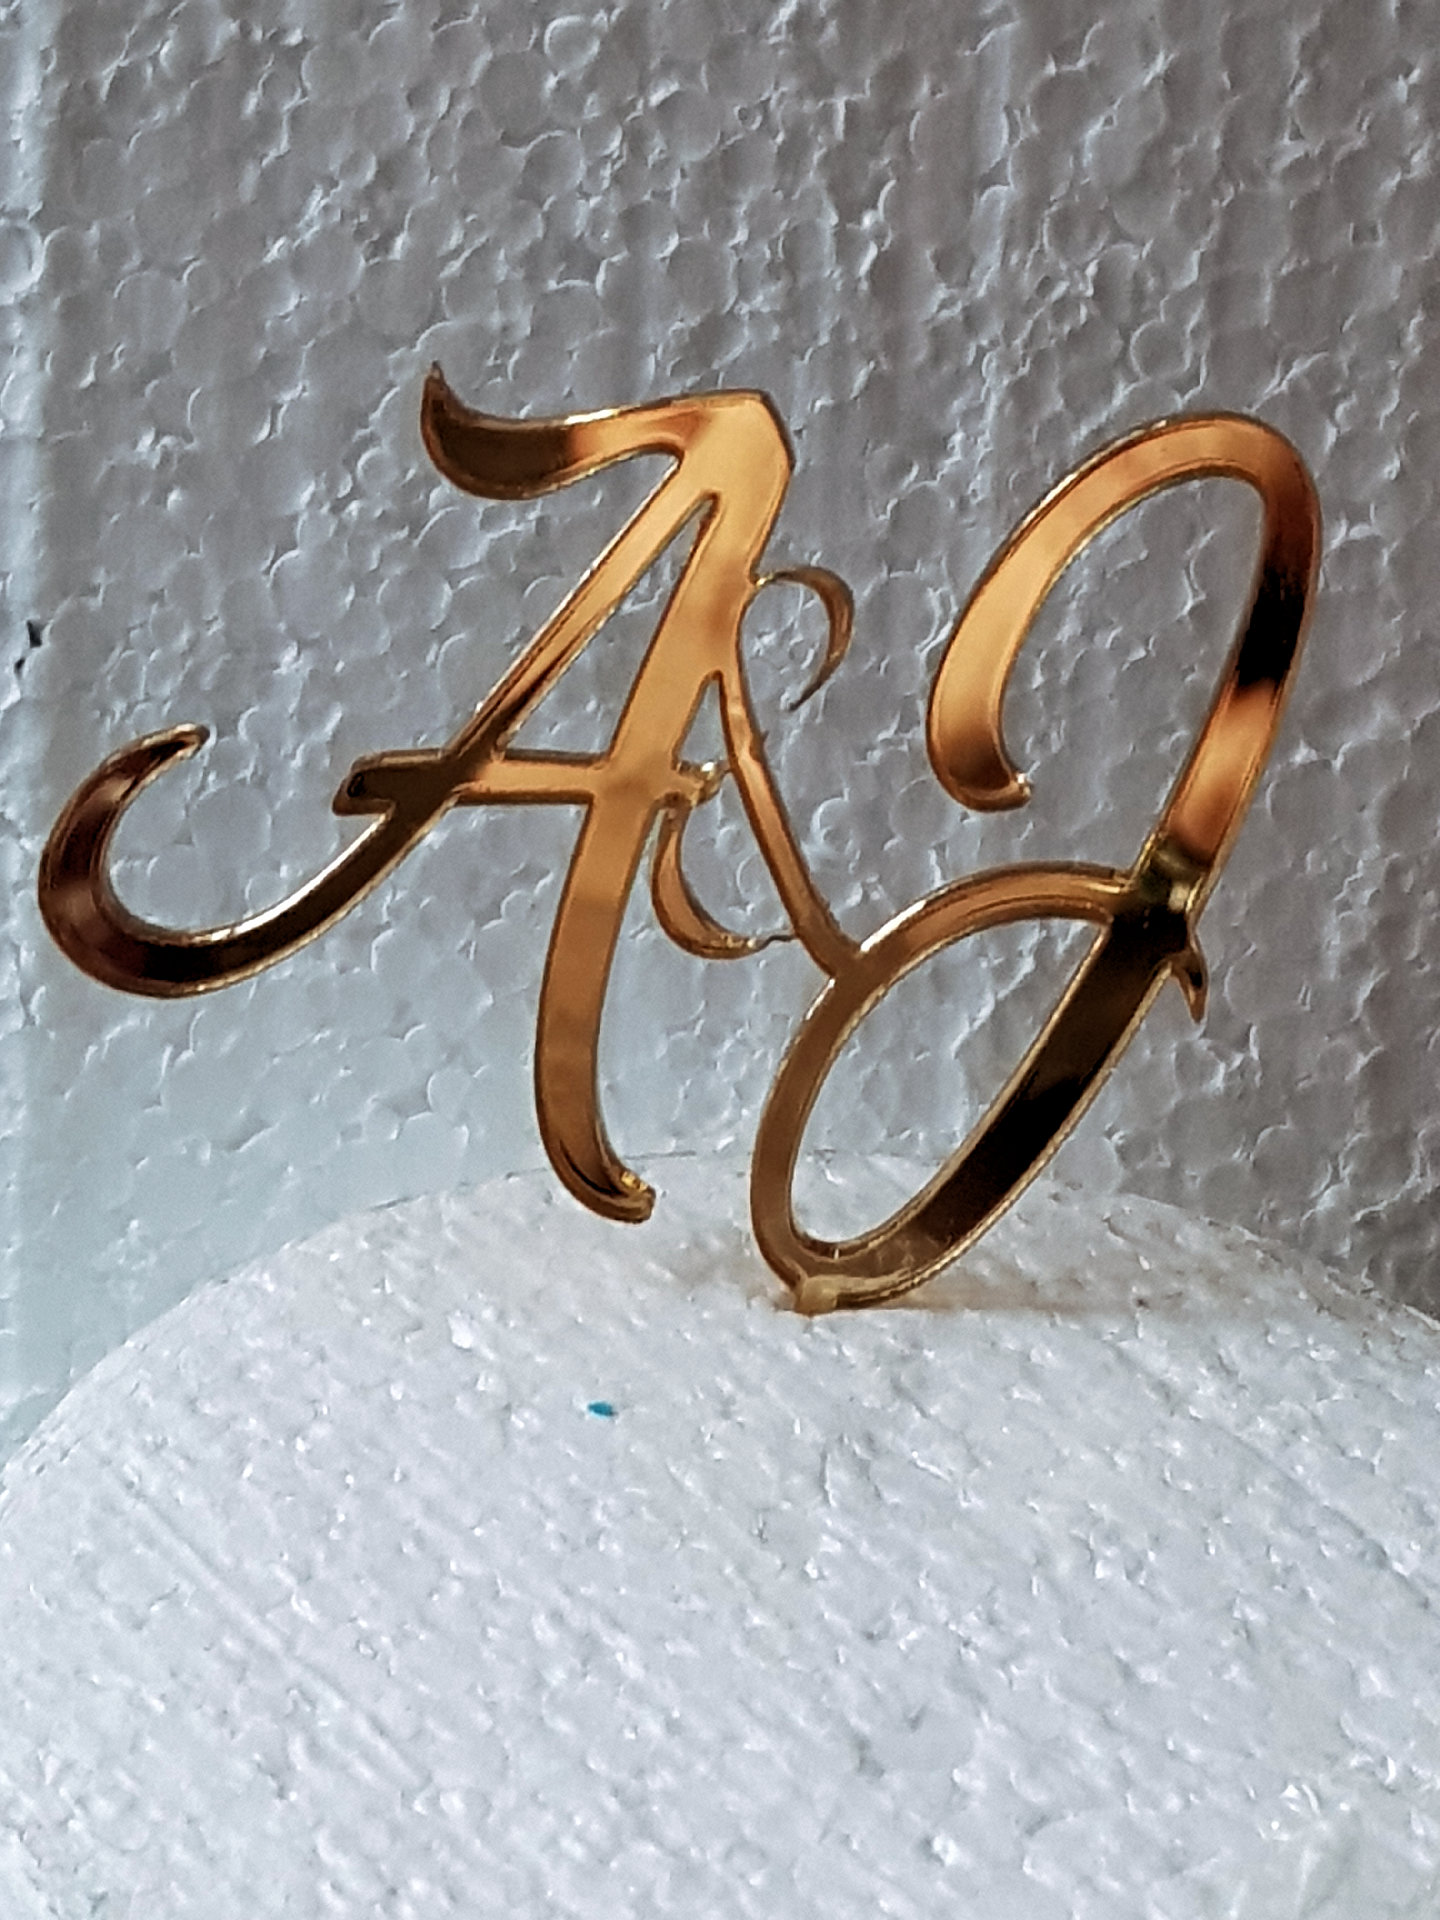 ? & ? choose you're own letters acrylic cake topper